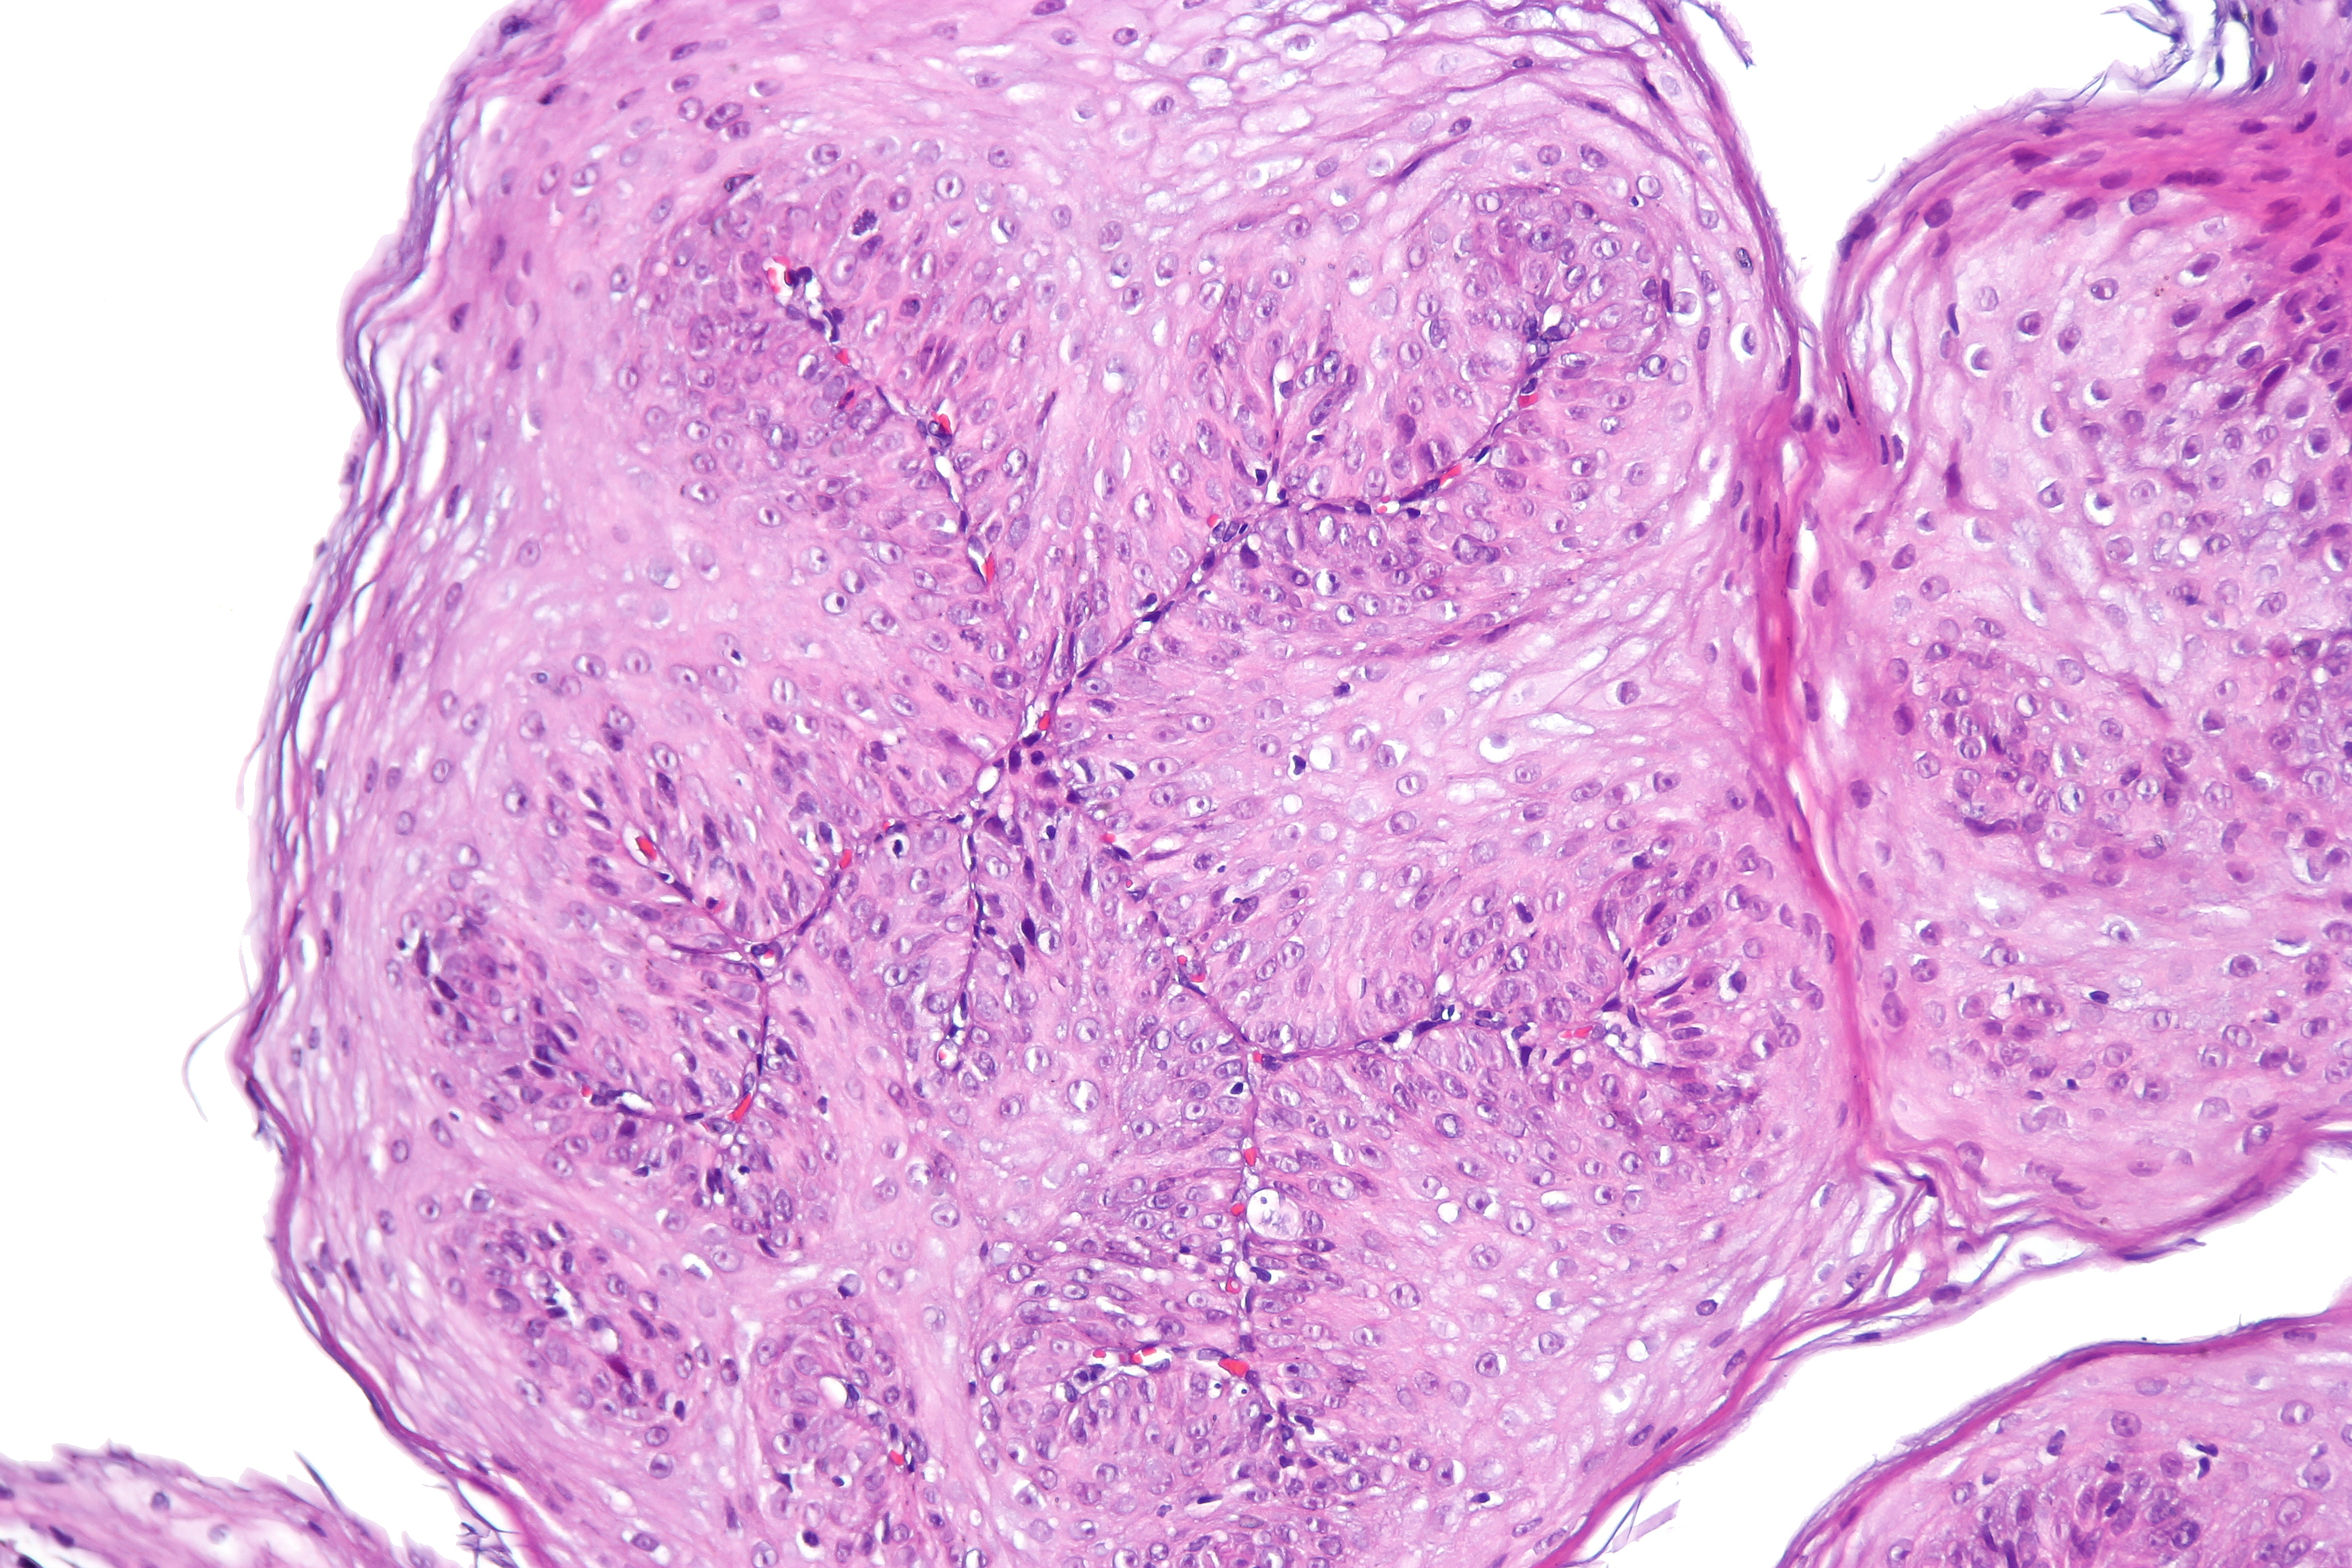 esophagus and papilloma